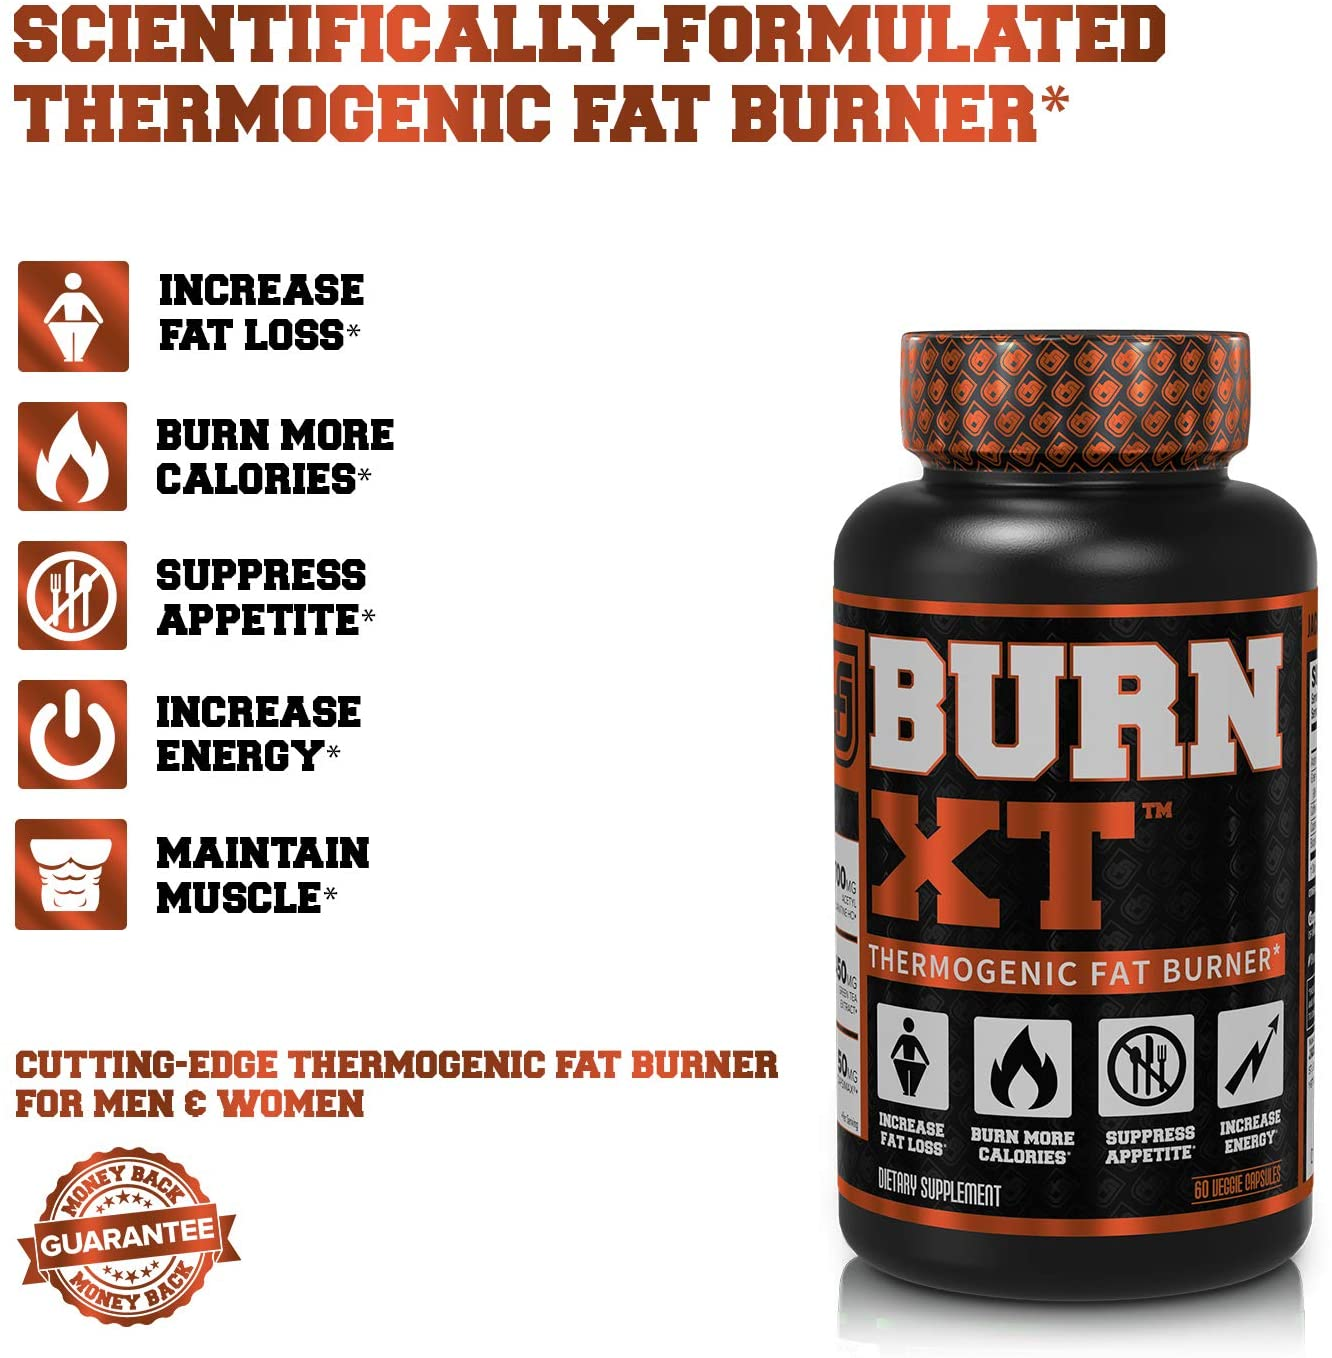 Burn-XT Thermogenic Fat Burner - Weight Loss Supplement, Appetite Suppressant, Energy Booster - Premium Fat Burning Acetyl L-Car